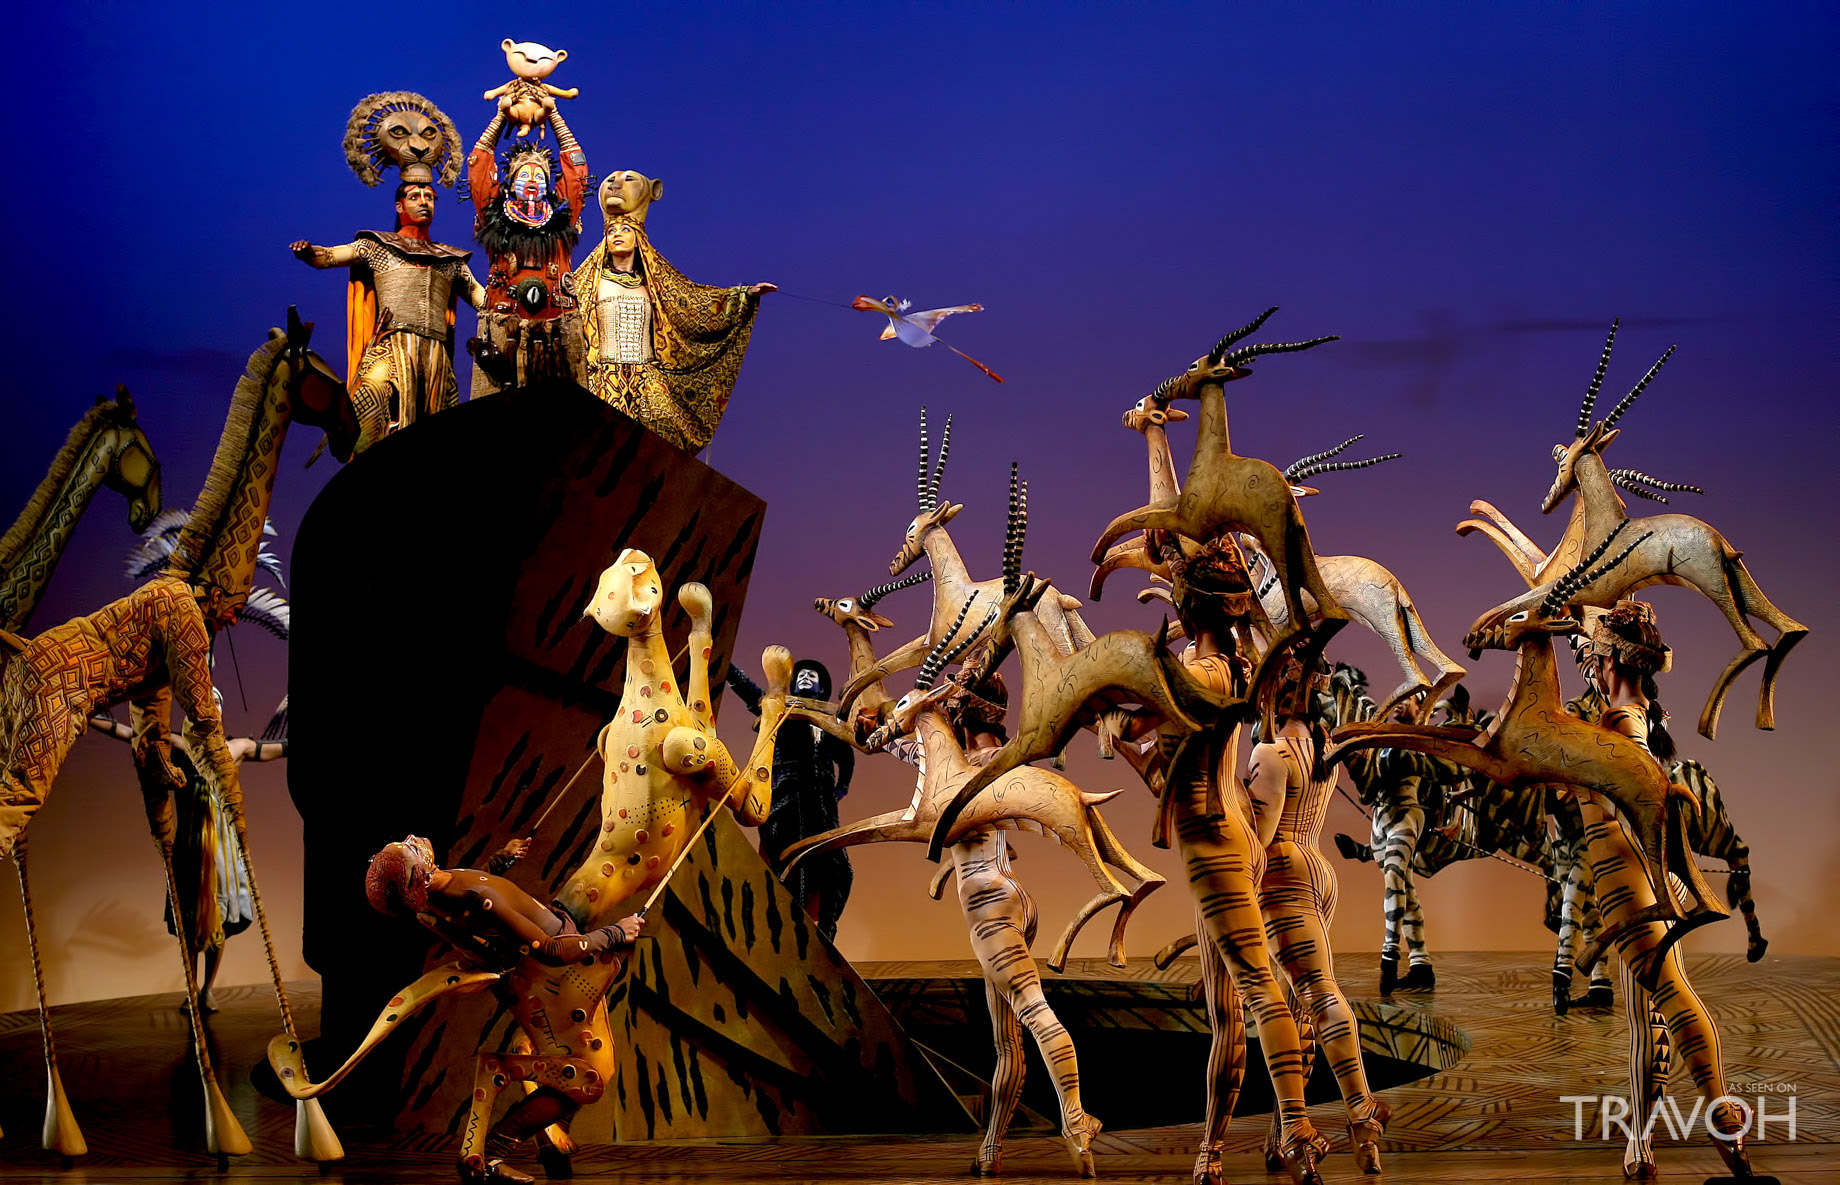 Catch a Performance of The Lion King on Broadway - The Top 5 Exciting Spring Break Activities in NYC for Young Kids